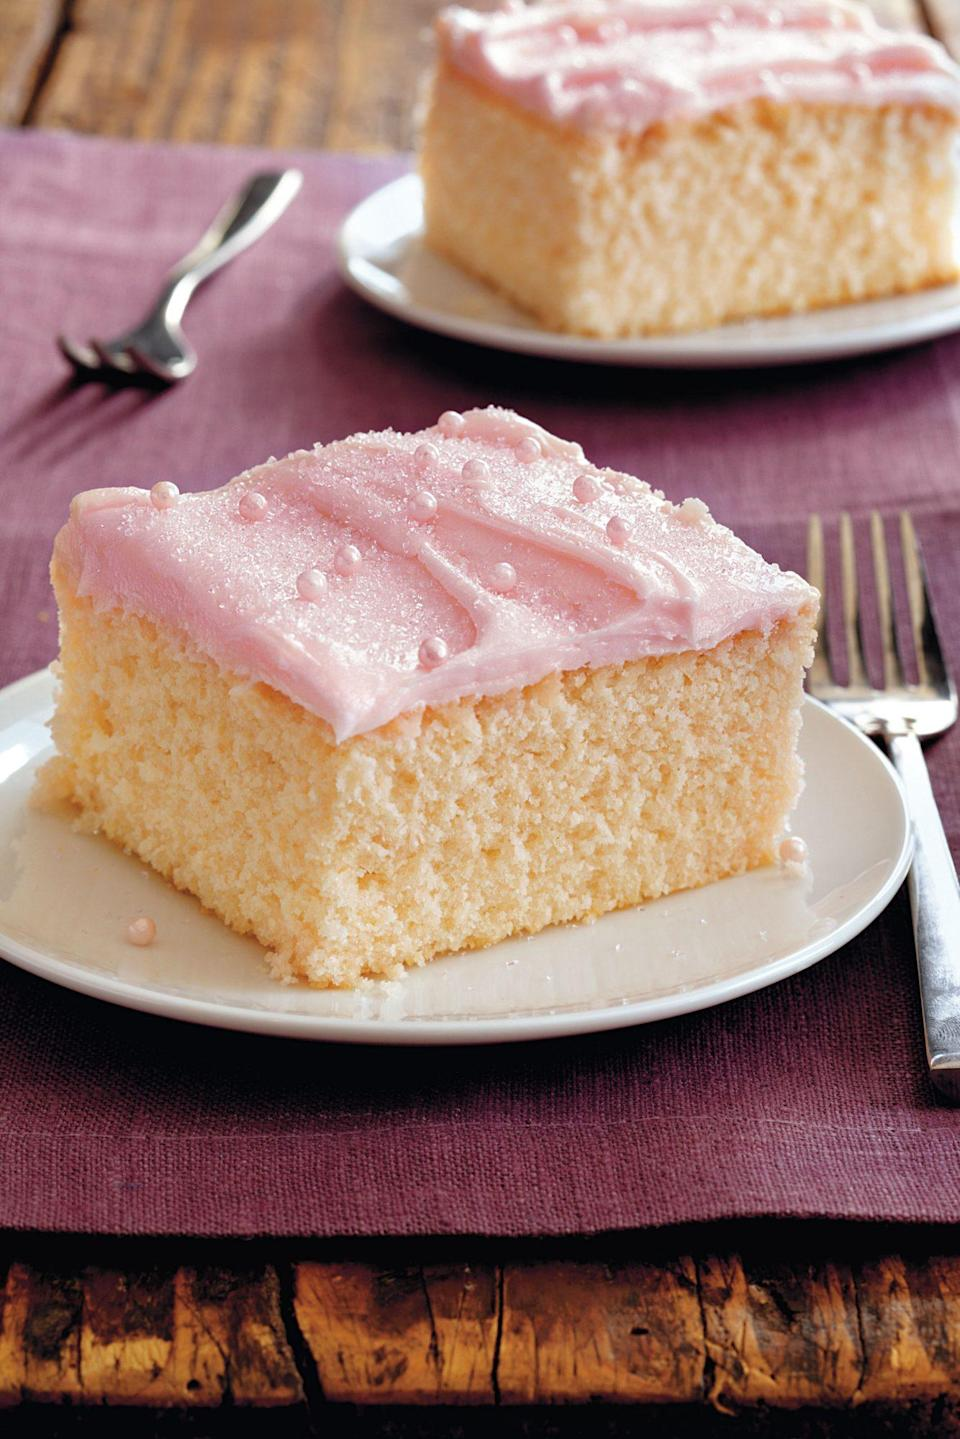 "<p><strong>Recipe: <a href=""https://www.southernliving.com/recipes/pink-lemonade-cake"" rel=""nofollow noopener"" target=""_blank"" data-ylk=""slk:Pink Lemonade Cake"" class=""link rapid-noclick-resp"">Pink Lemonade Cake</a></strong></p> <p>Instead of a lemonade stand, make today's activity a lemonade cake!</p>"